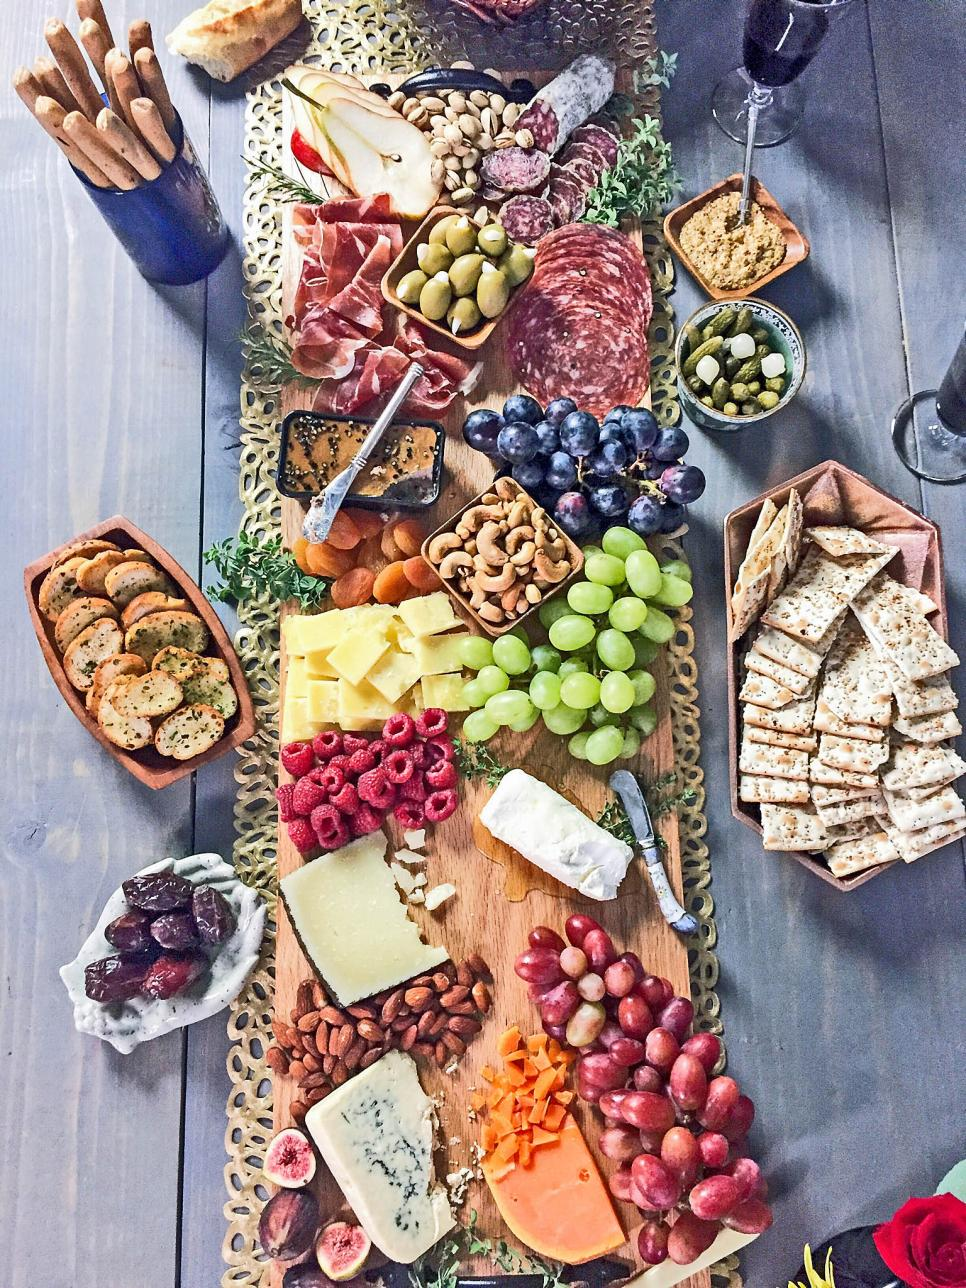 original_Camille-Smith-charcuterie-board-birds-eye-beauty-vert.jpg.rend.hgtvcom.966.1288.jpeg